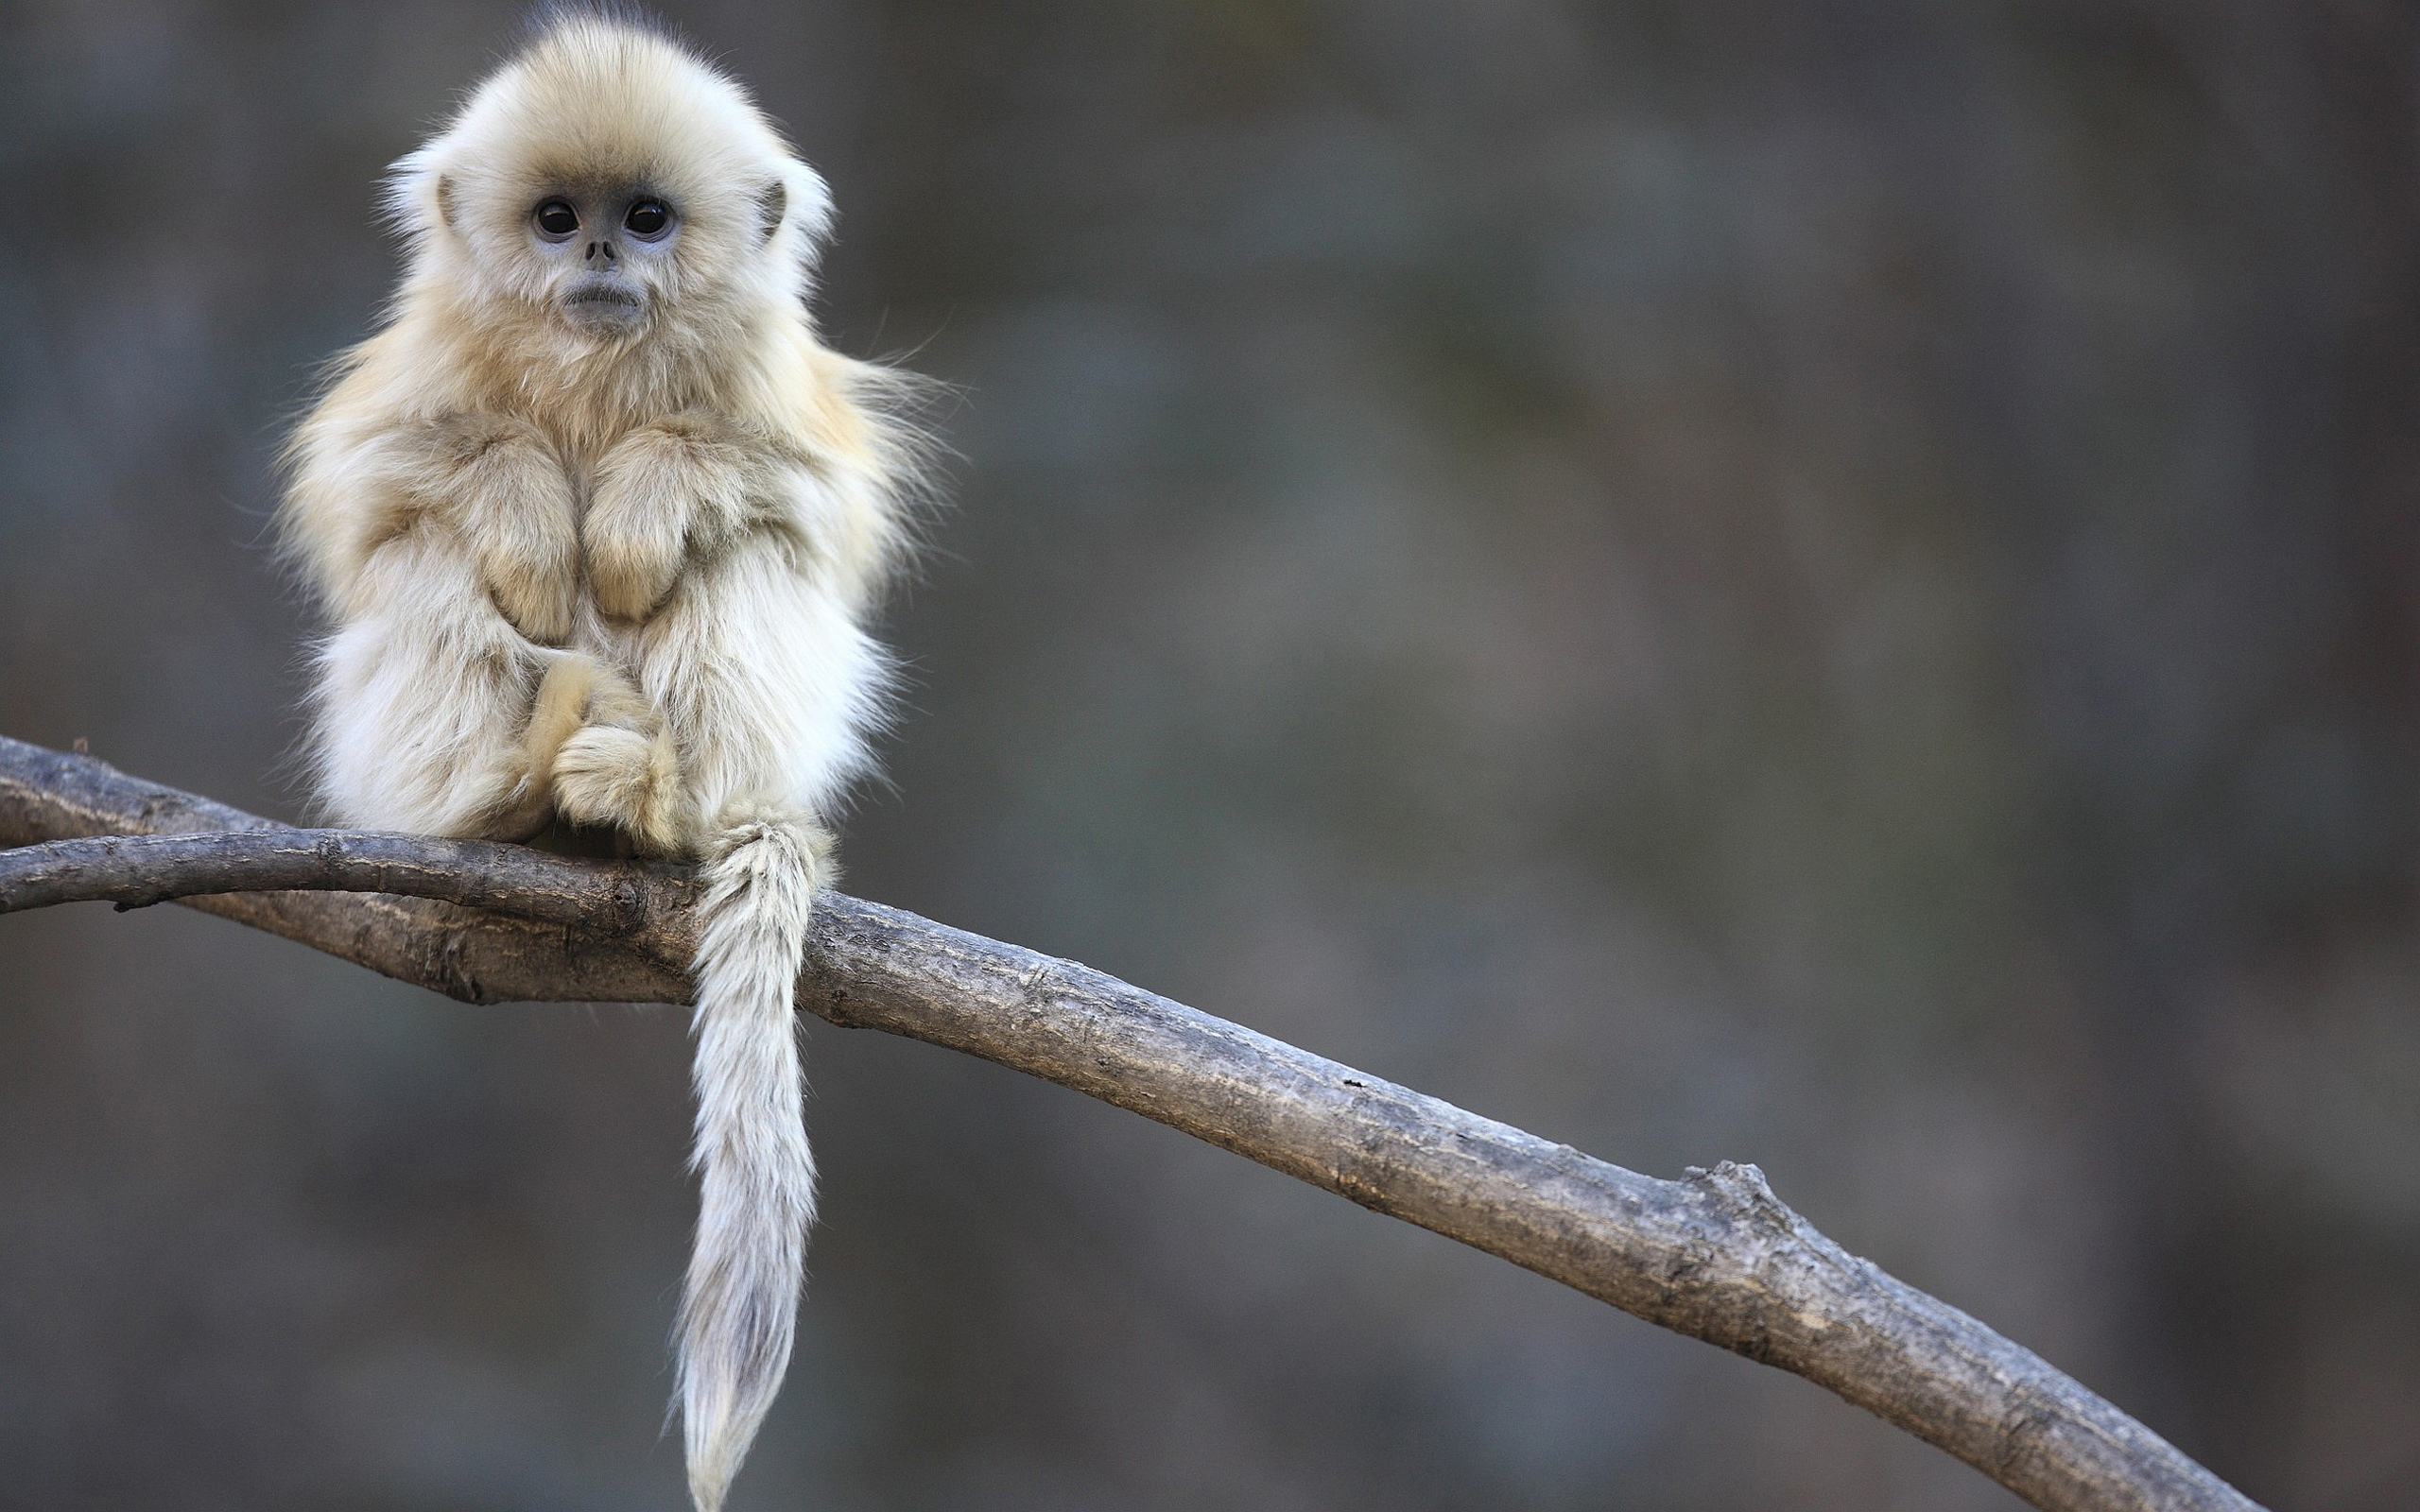 Little fluffy Monkey